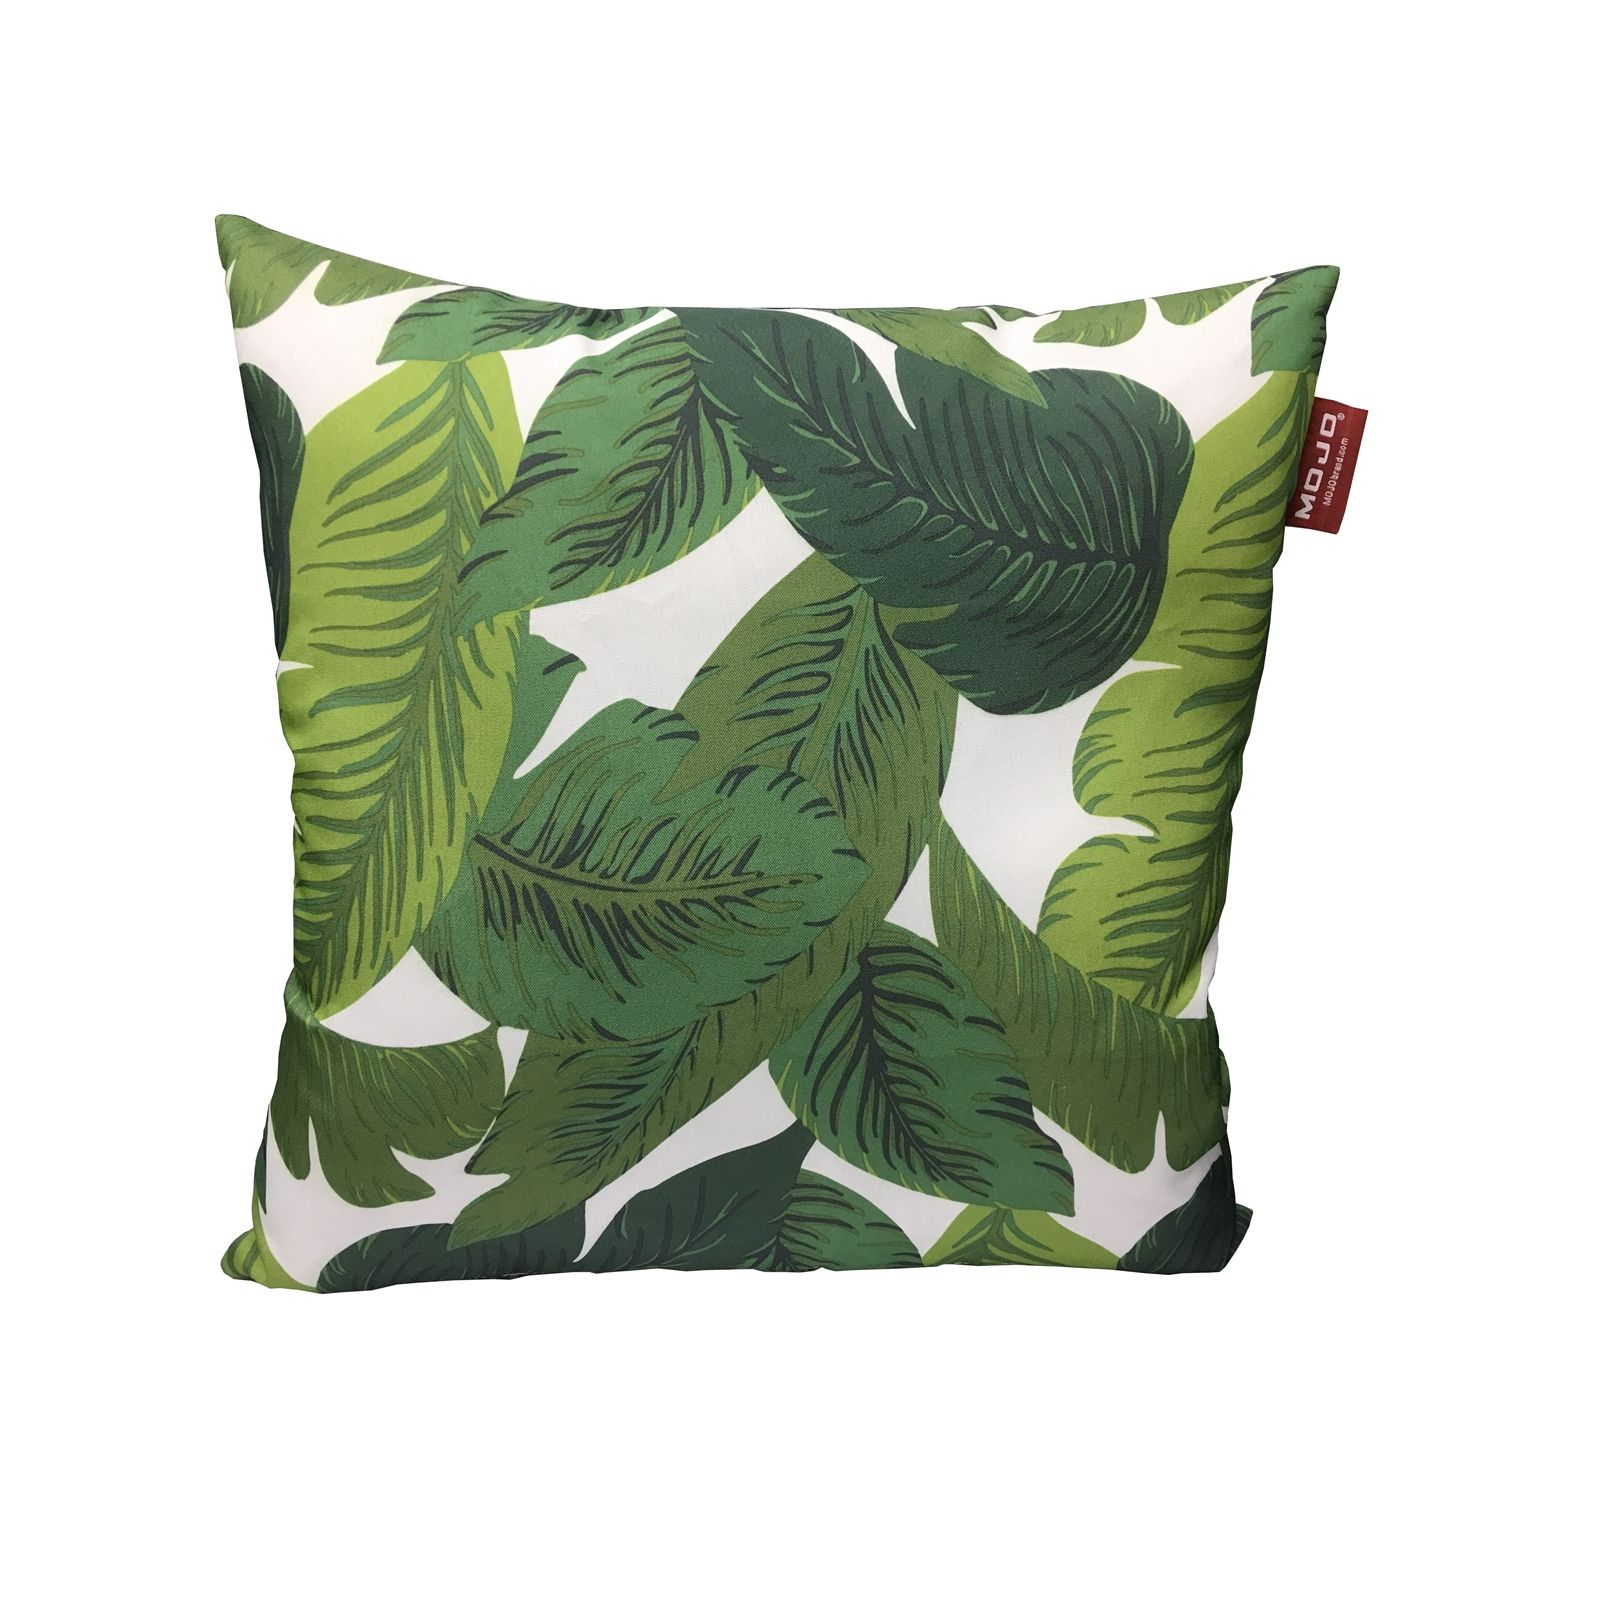 Mojo 45cm Falling Leaf Outdoor Cushion Cover Outdoor